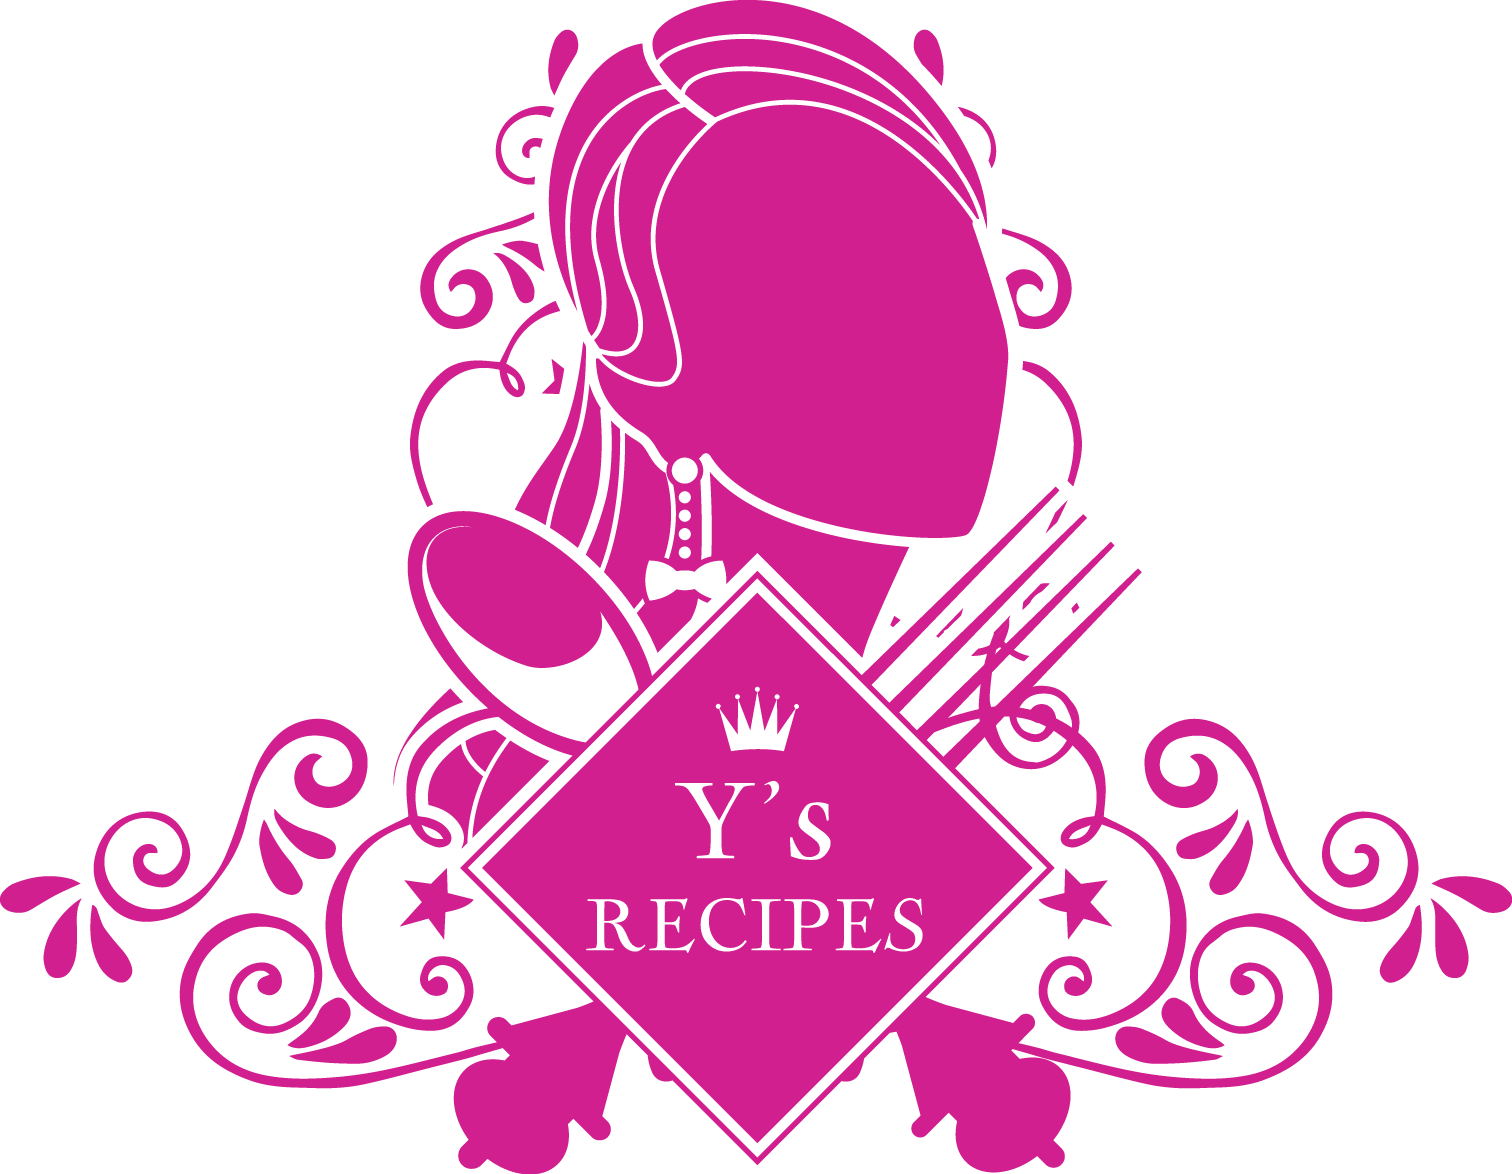 Y's Recipes